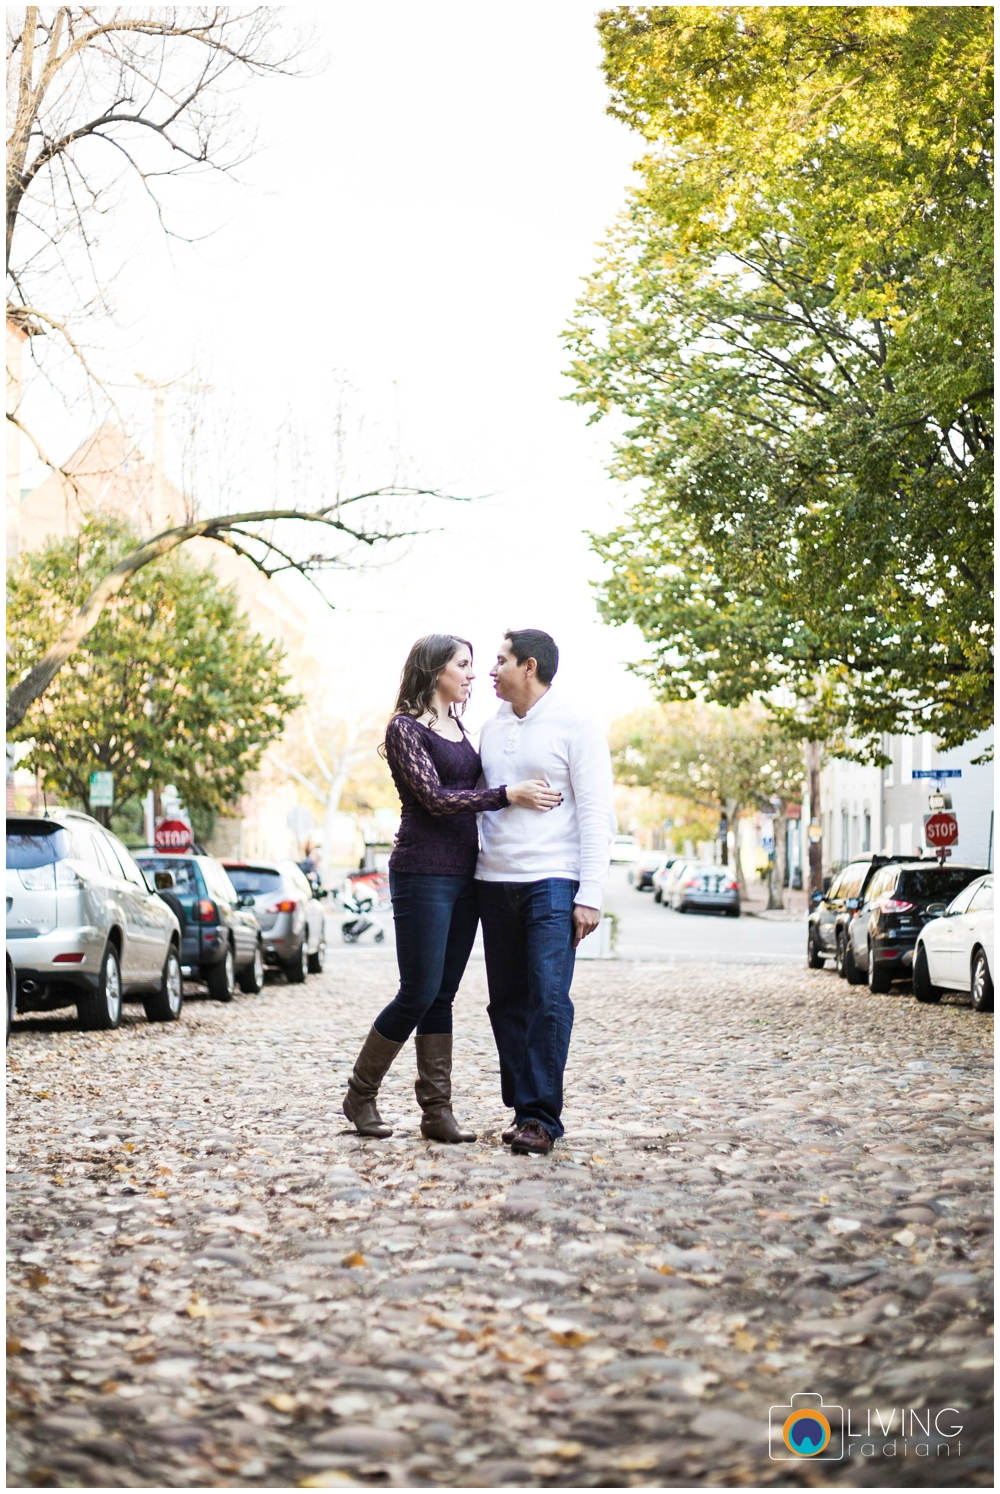 mario+allison-engaged-alexandria-virginia-engagement-weddings-outdoors-living-radiant-photography_0002.jpg